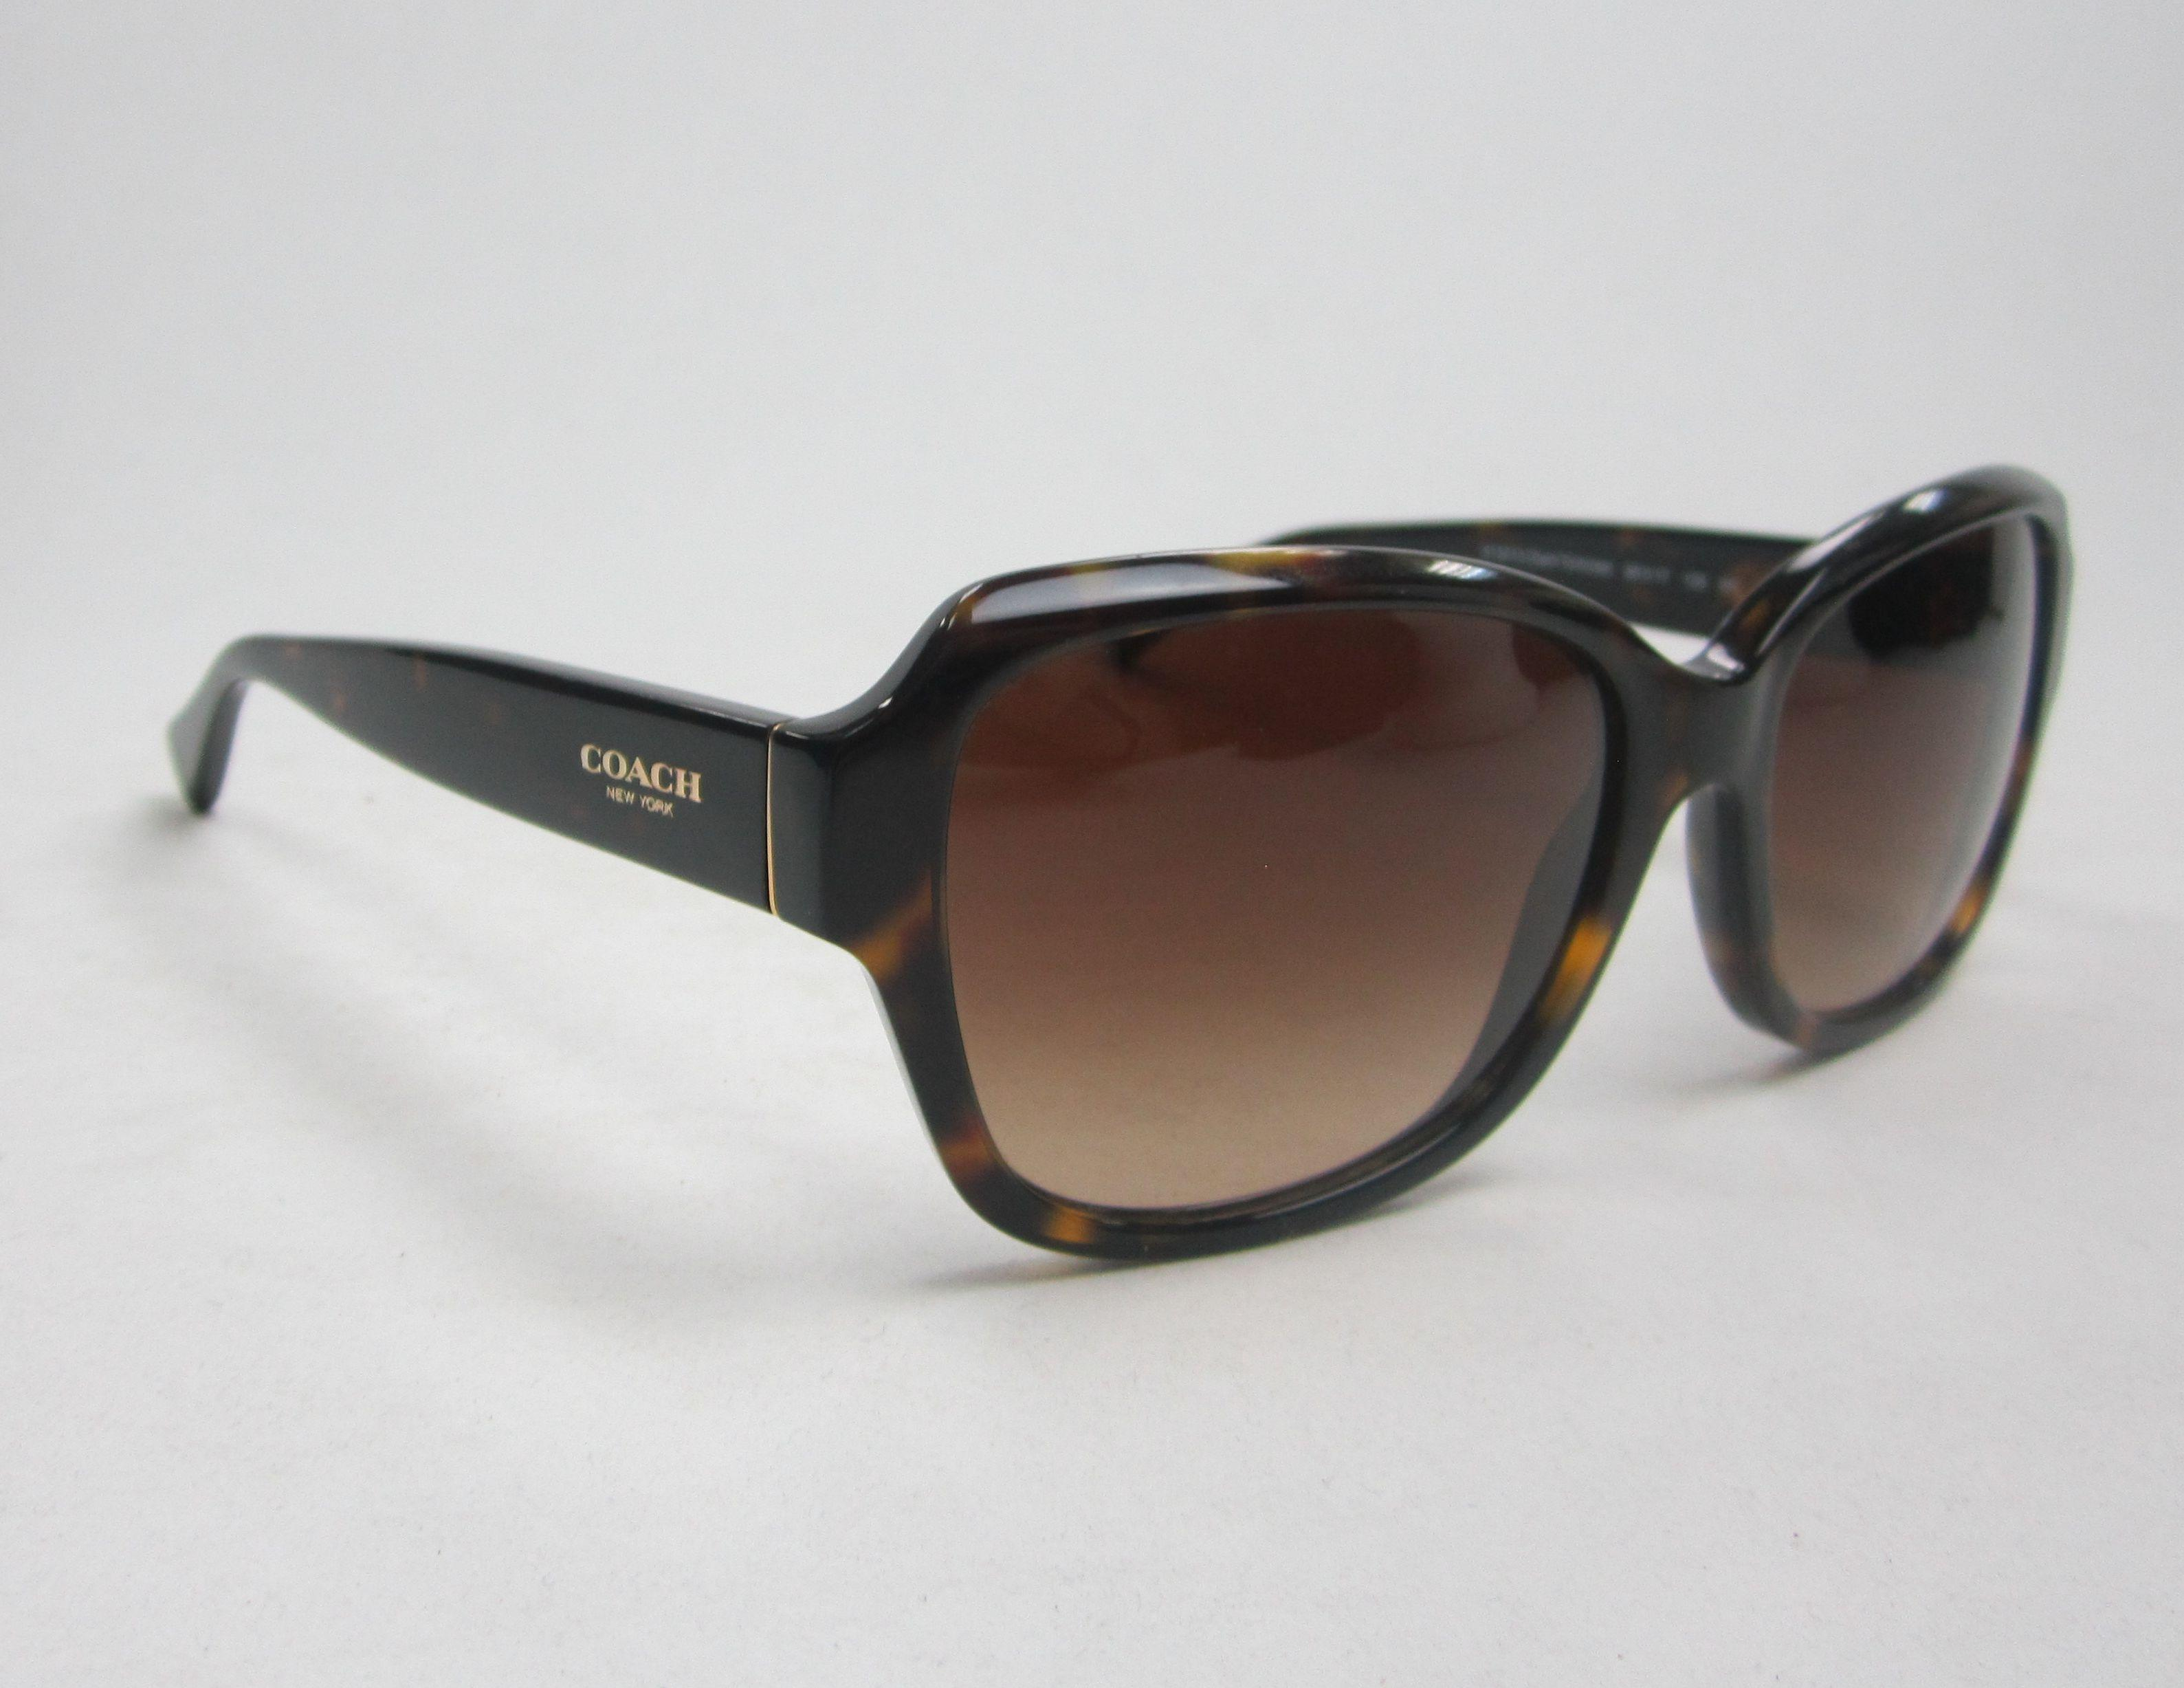 1bab6b7442 ... promo code for coach hc 8160 l145 512013 not polarized womens  sunglasses stb409 e41e0 da946